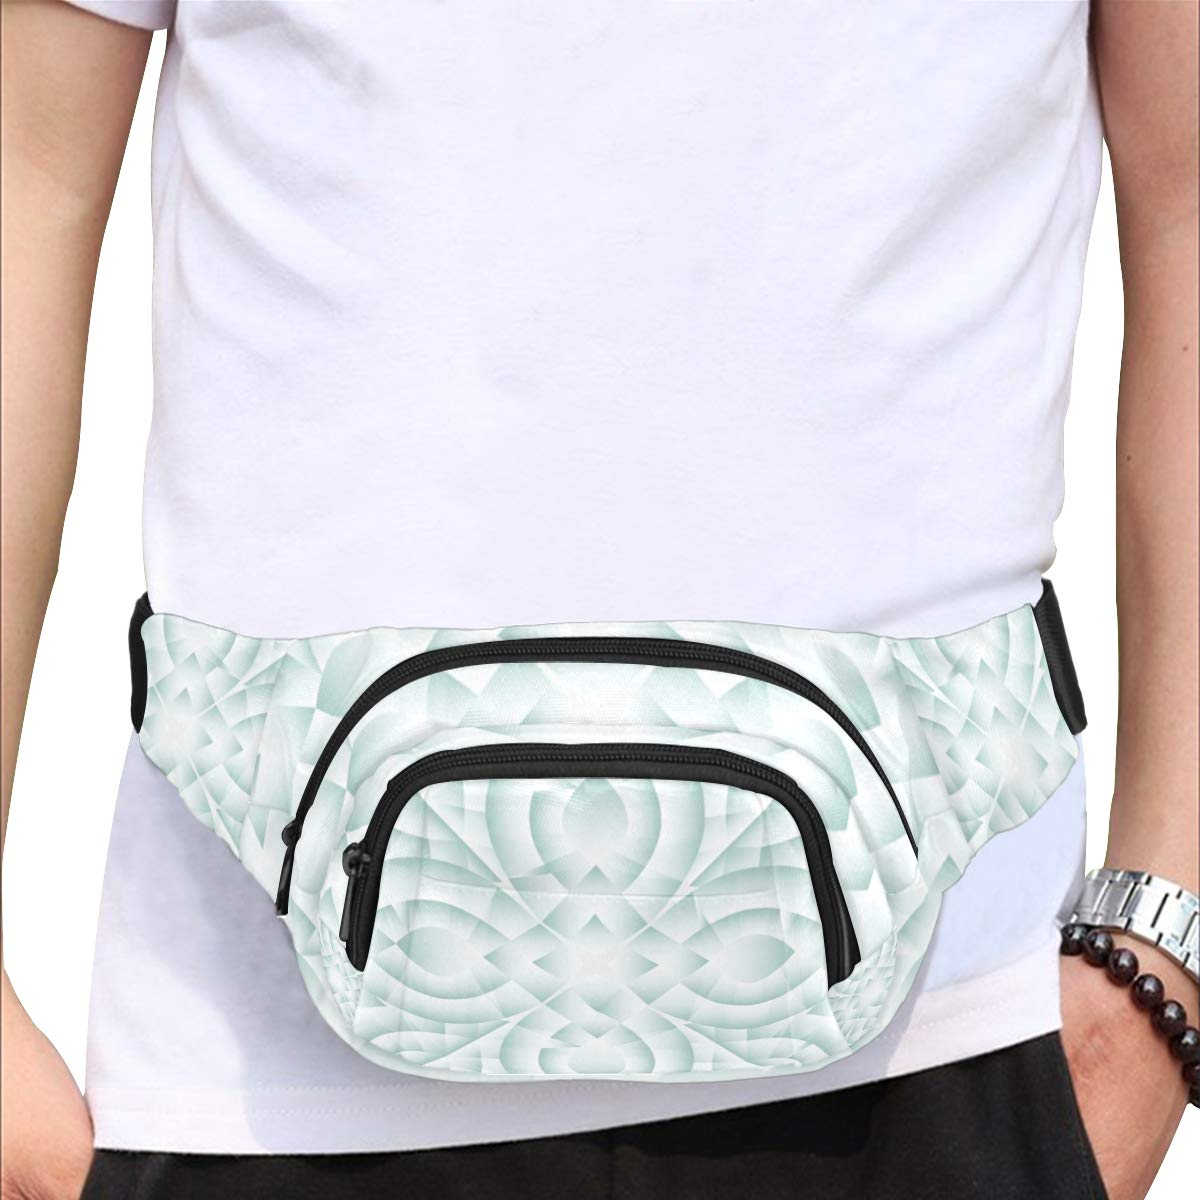 Floral Of Six Diamond Petals Fenny Packs Waist Bags Adjustable Belt Waterproof Nylon Travel Running Sport Vacation Party For Men Women Boys Girls Kids